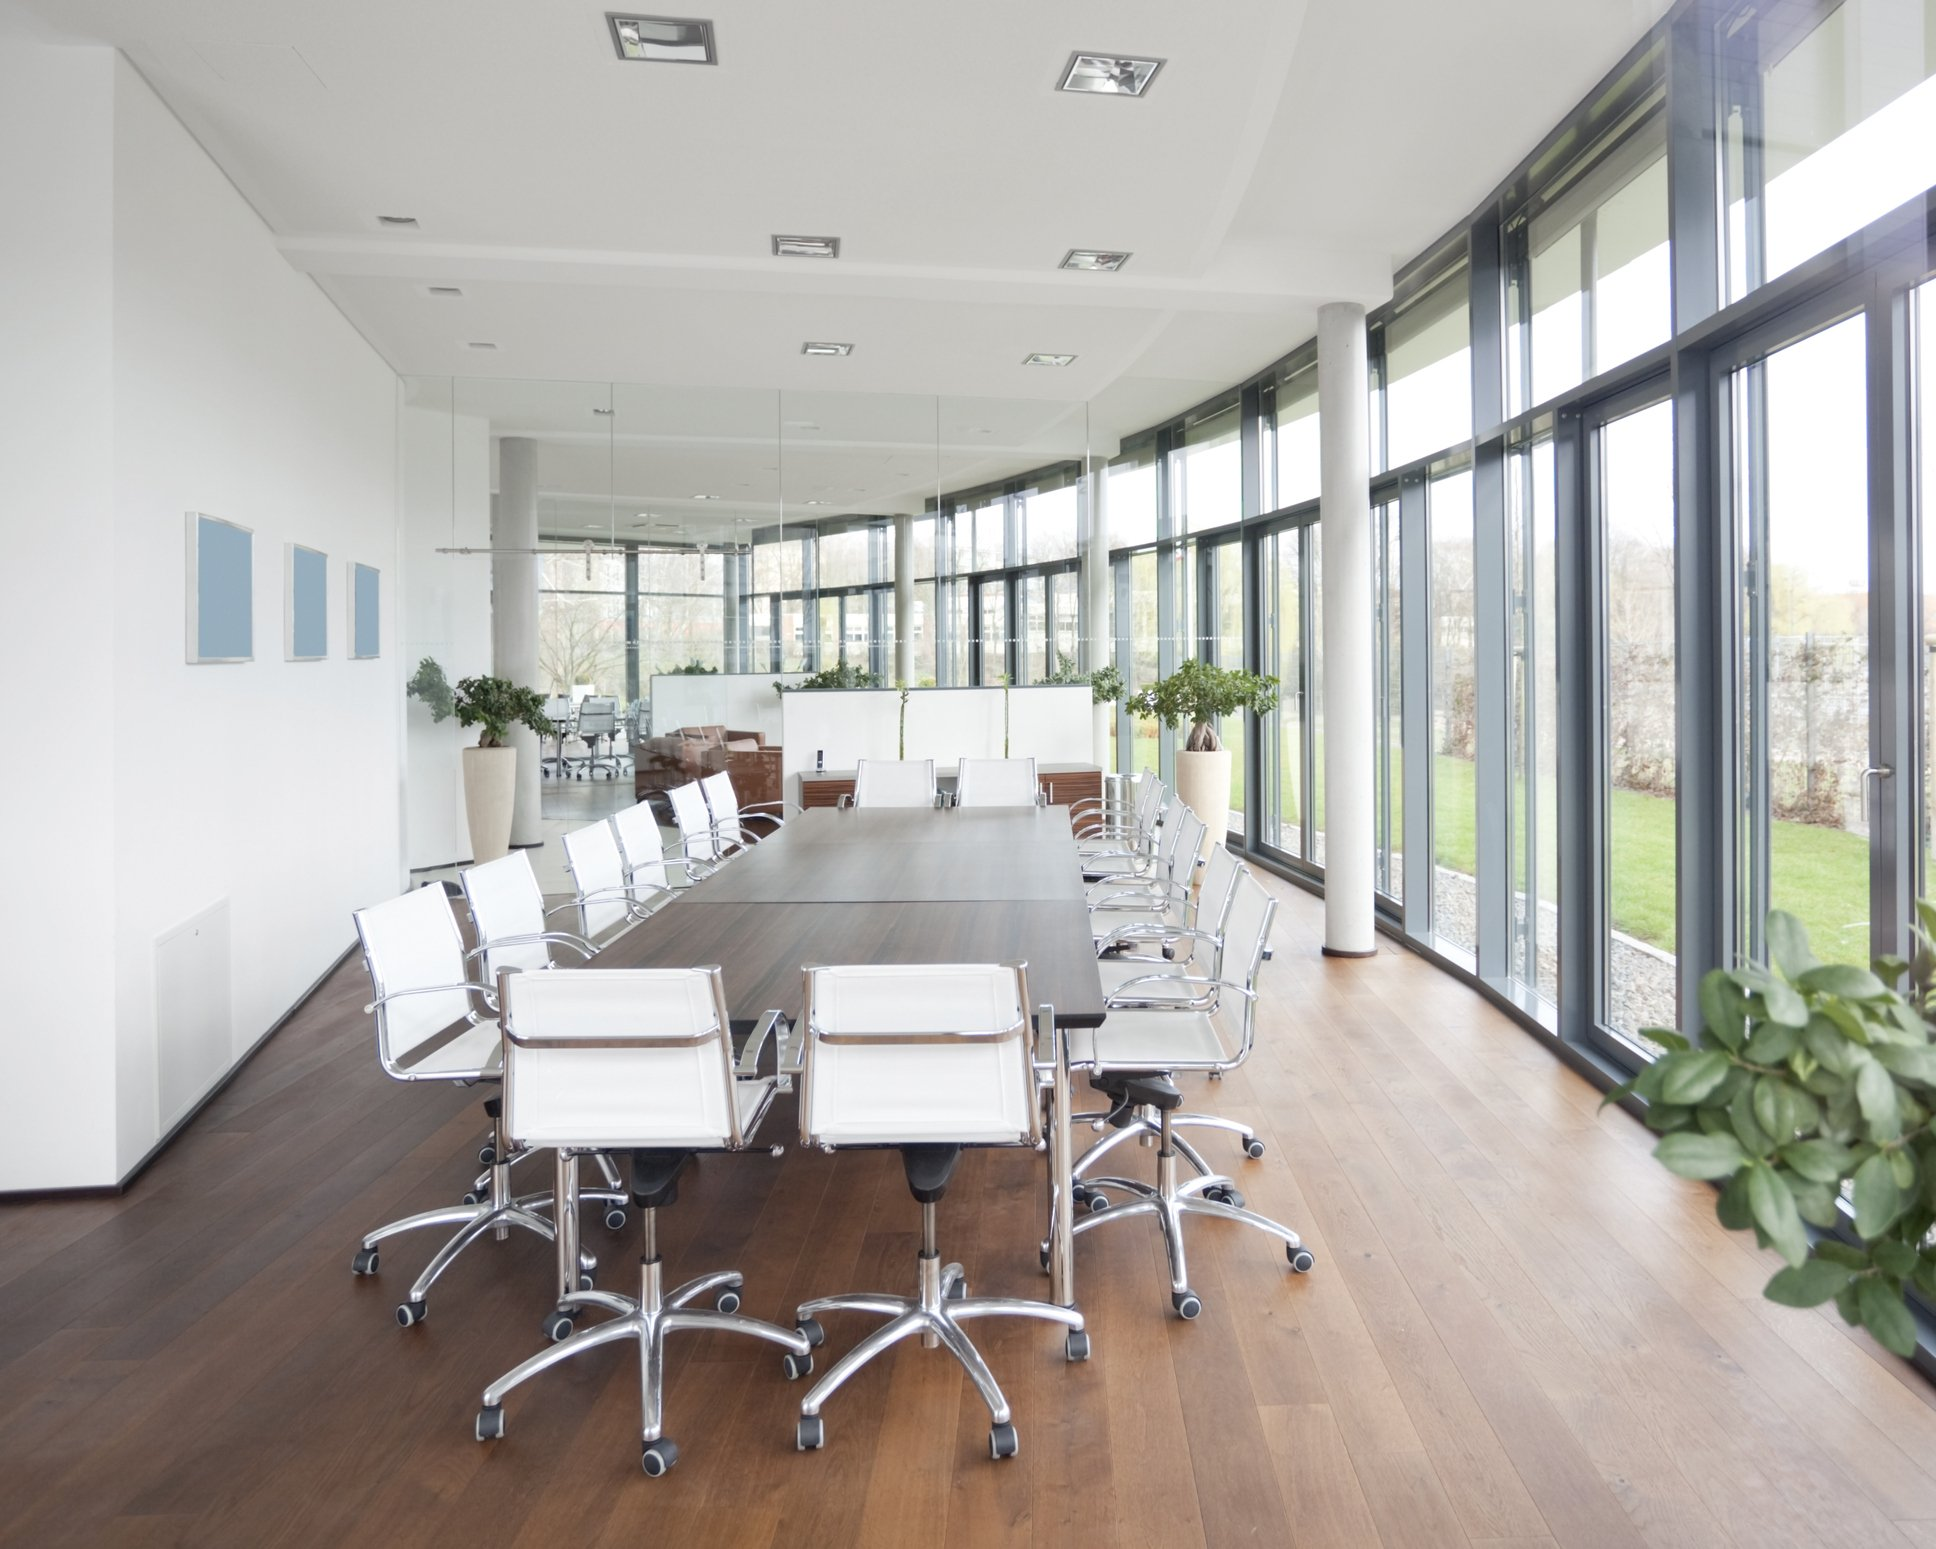 Spacious and bright business conference room with hard wood floor and a bank of windows, opening up into a garden. There are chairs lines up and the decoration is very modern and contemporary.